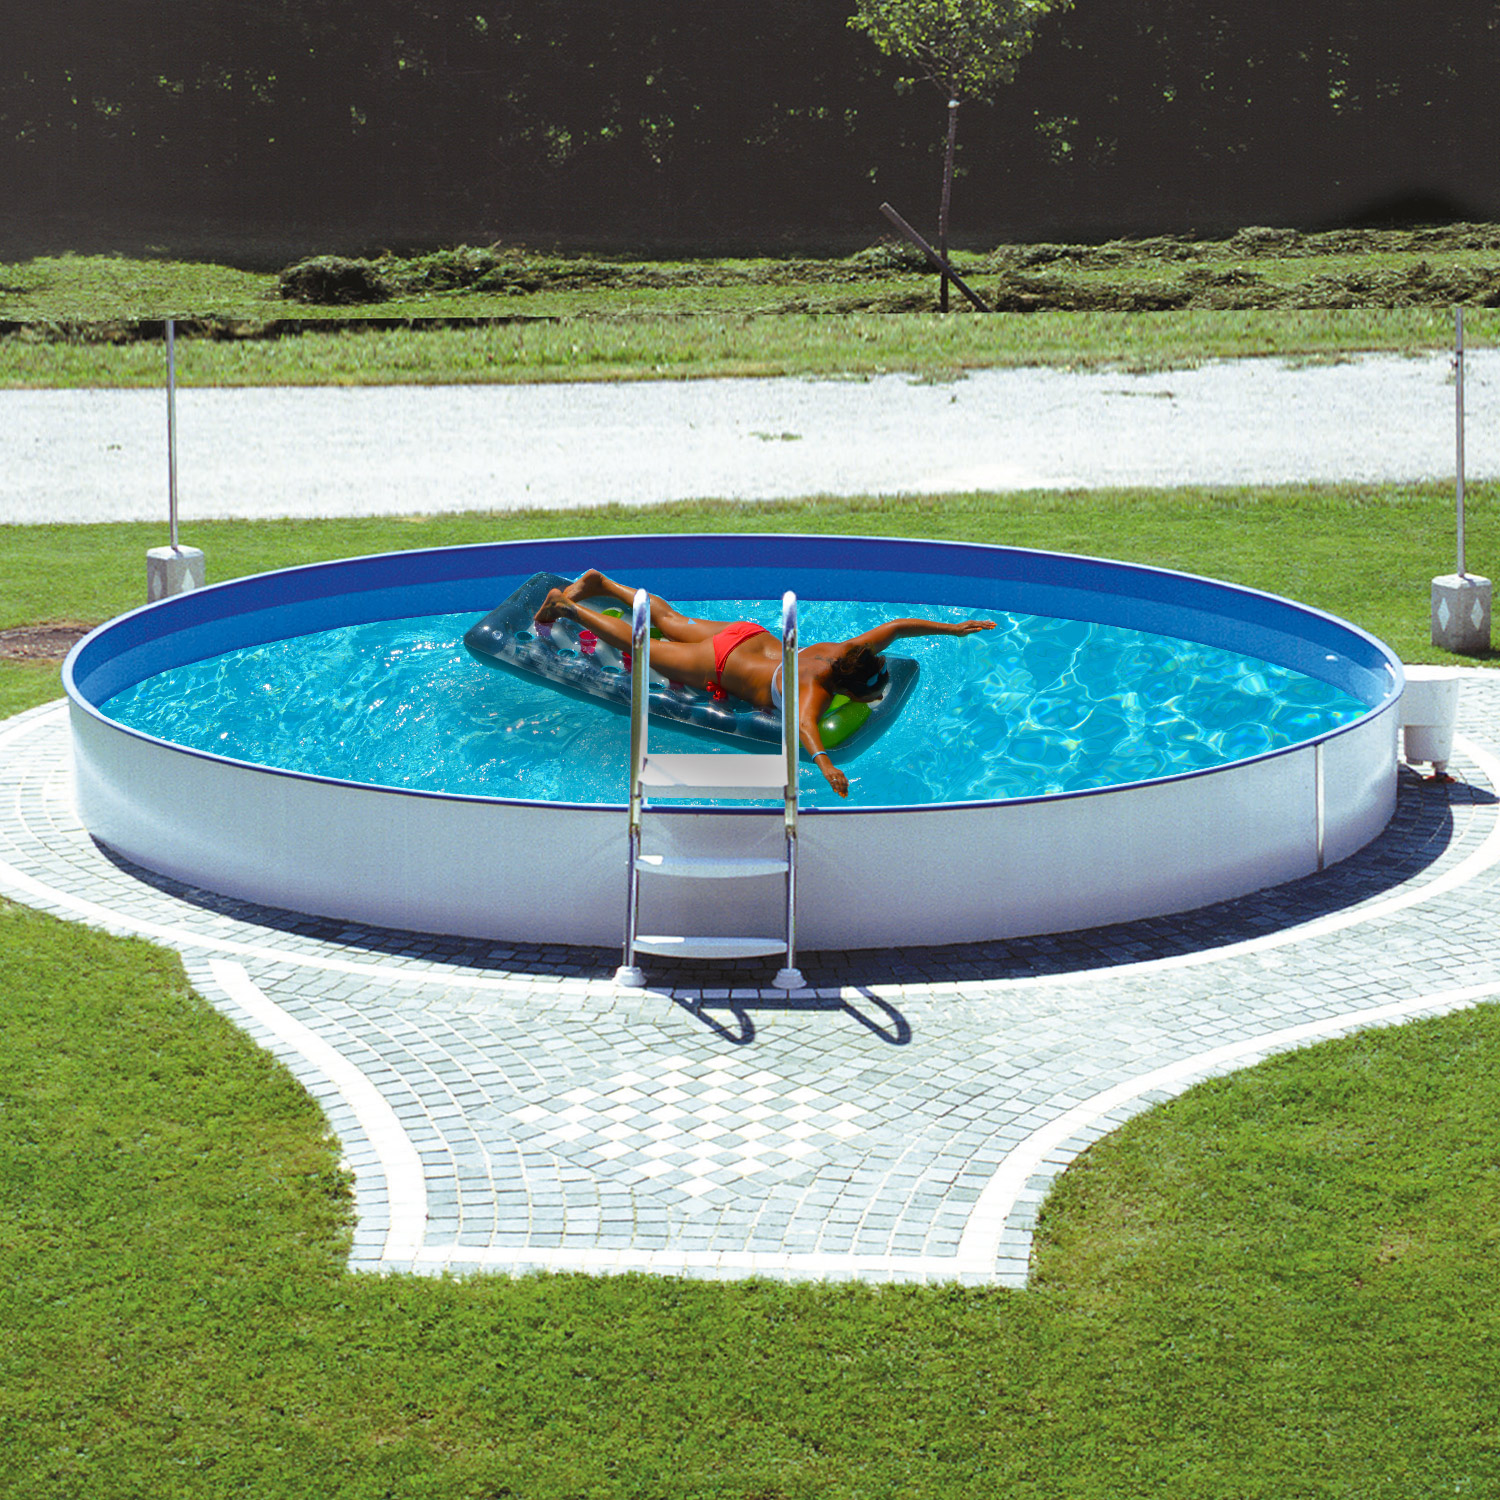 stahlwandpool 460x120cm schwimmbecken swimming pool schwimmbad metal stahlwand ebay. Black Bedroom Furniture Sets. Home Design Ideas